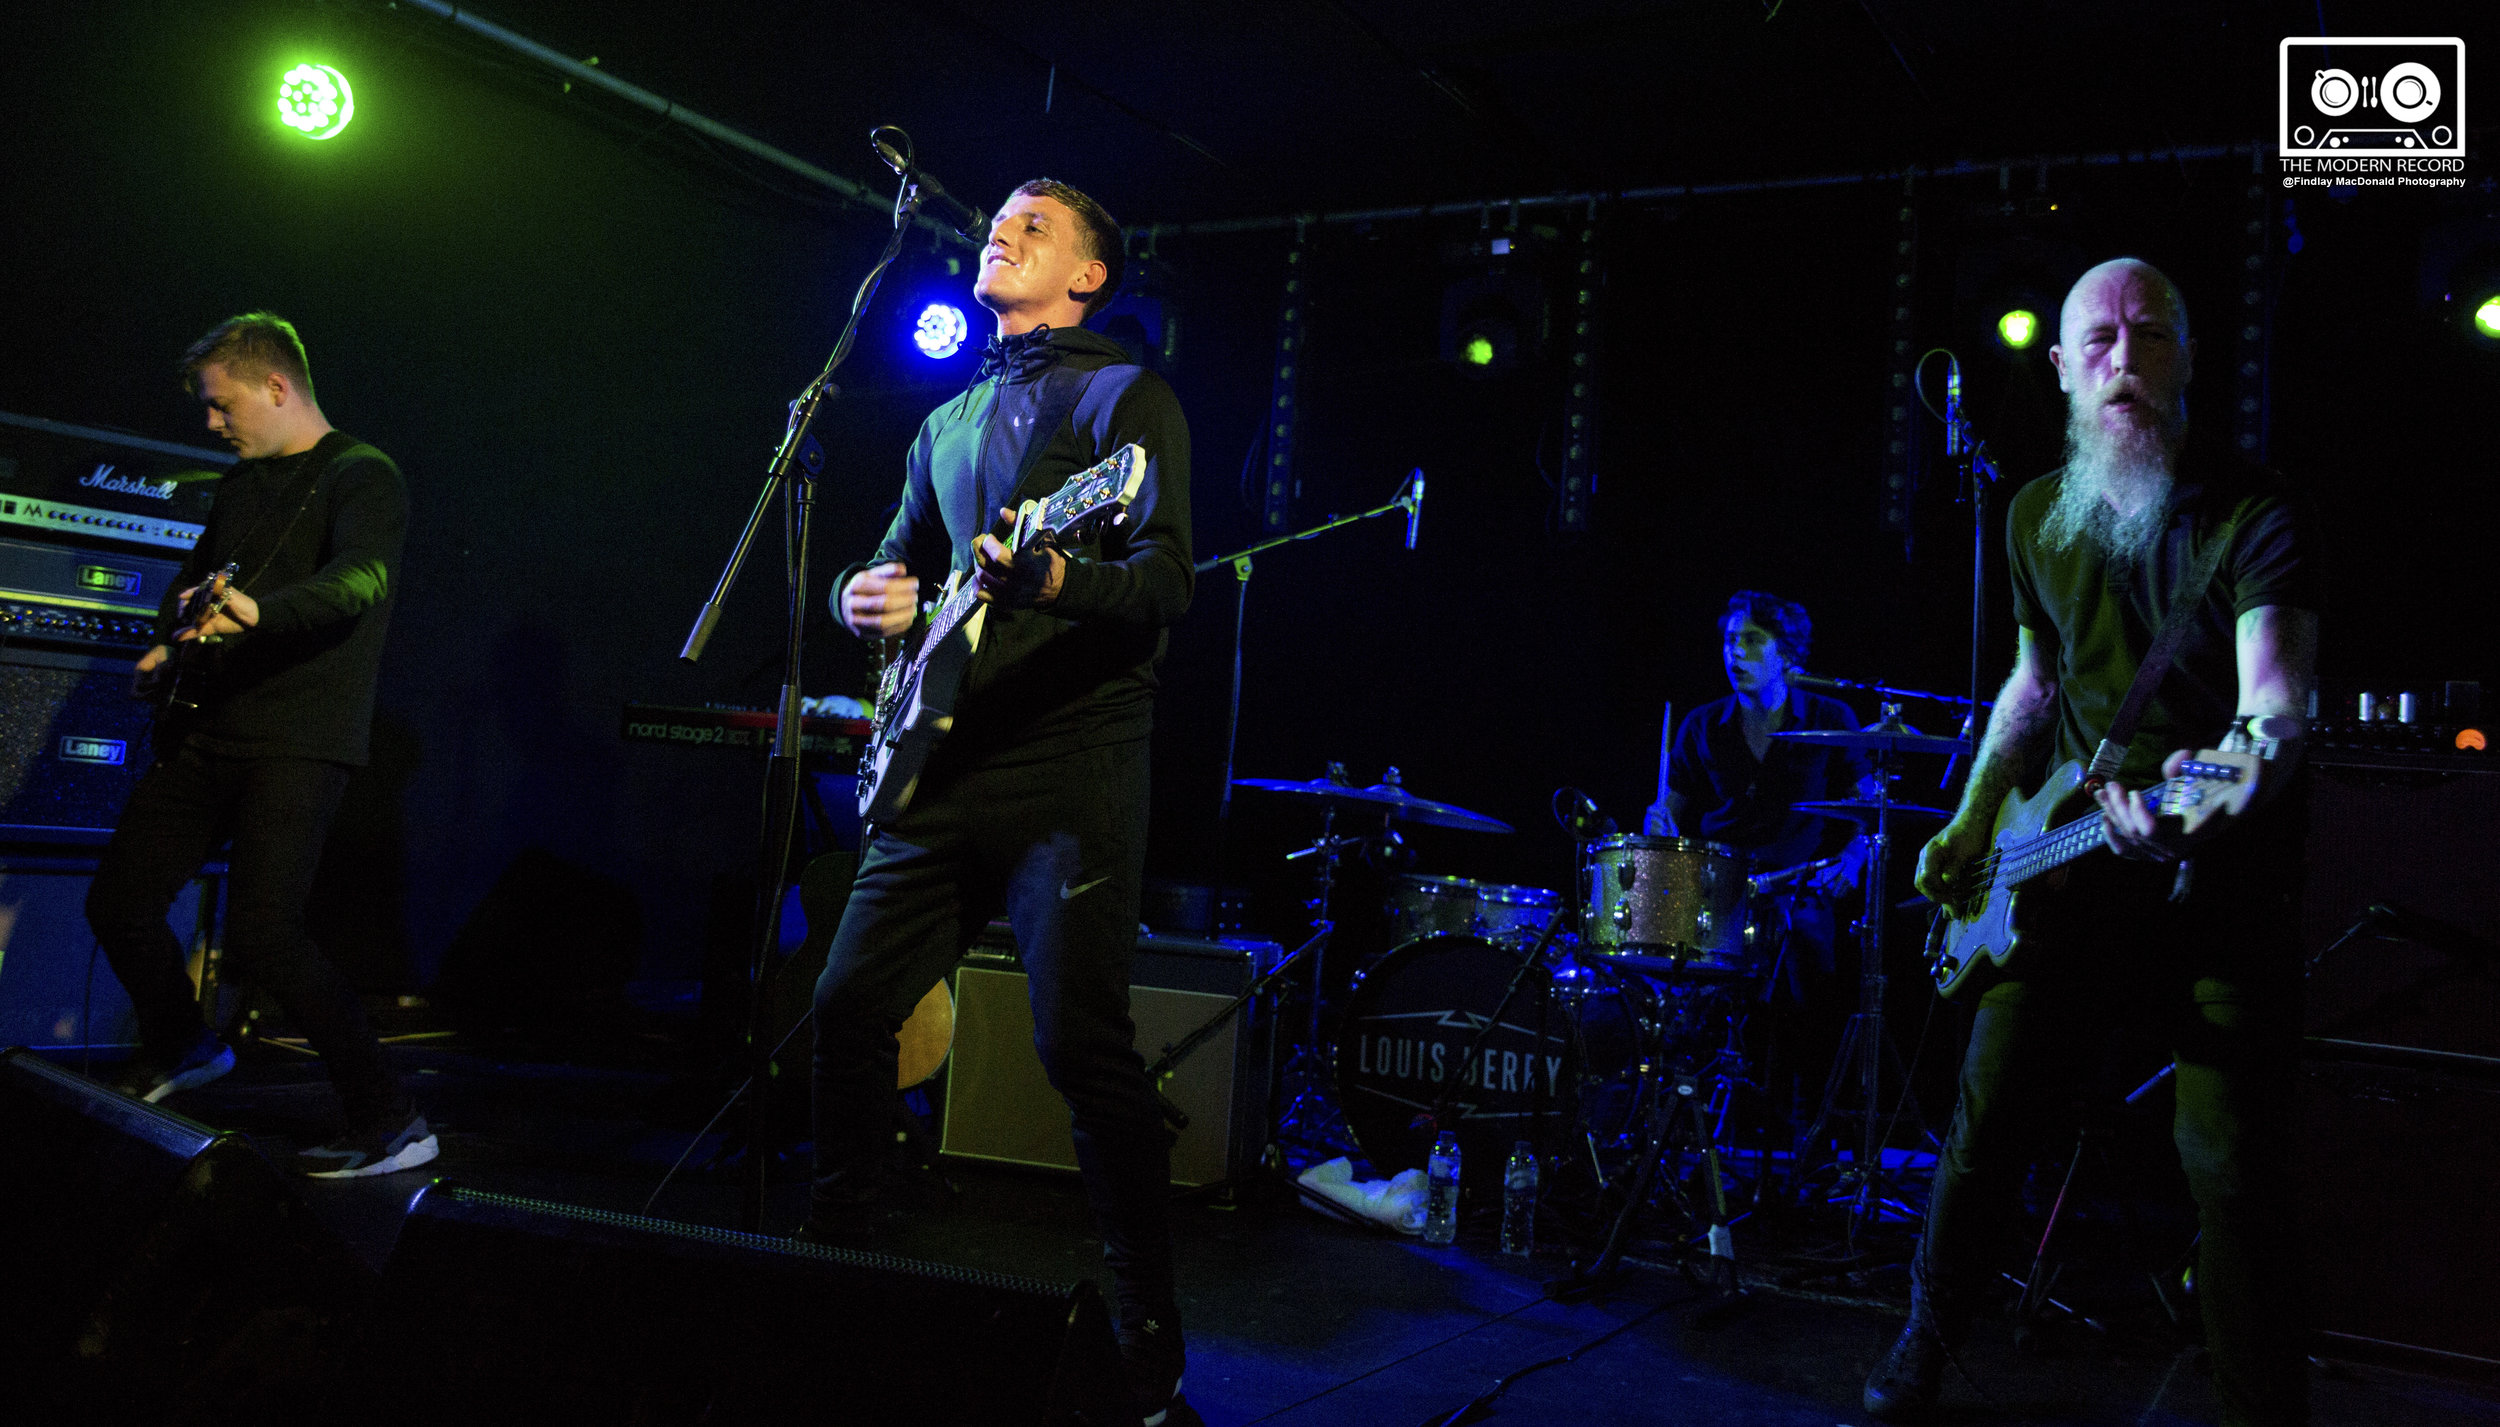 LOUIS BERRY PERFORMING AT EDINBURGH'S LA BELLE ANGELE - 21.10.2017  PICTURE BY: FINDLAY MACDONALD PHOTOGRAPHY